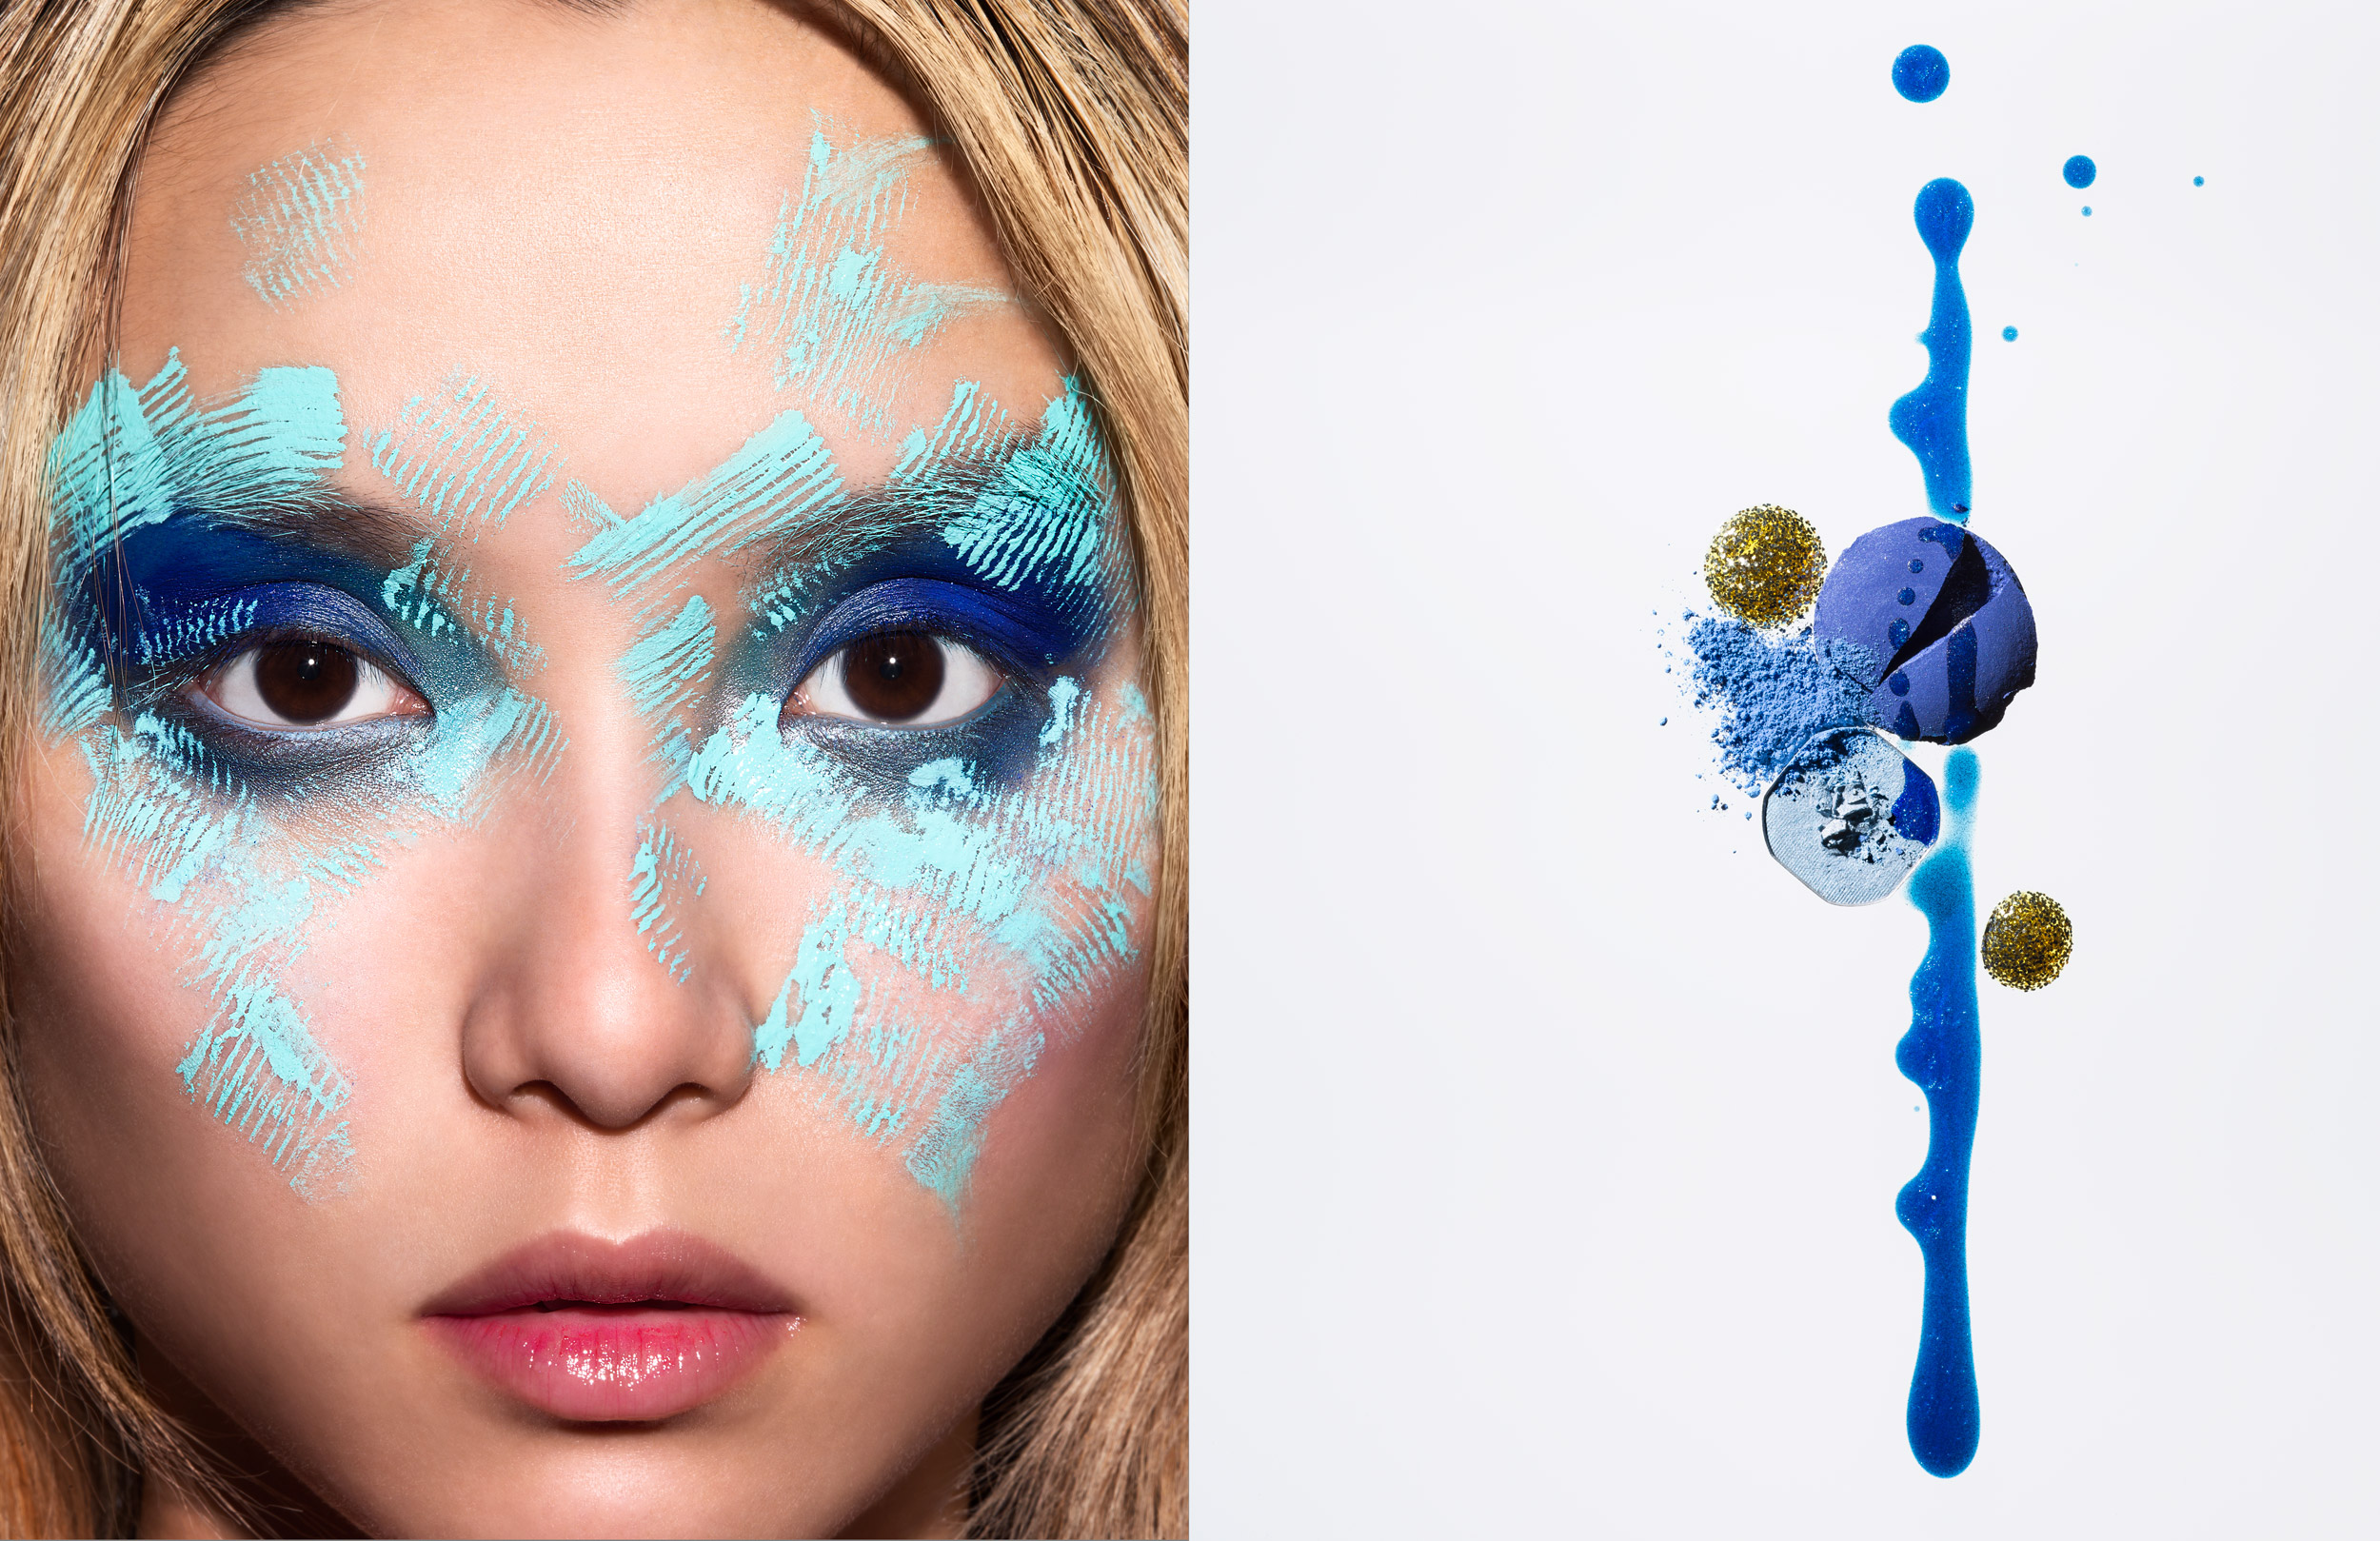 Musilek-Stan-Paris-Vogue-Blue-Makeup-Beauty-Photographer-Advertising